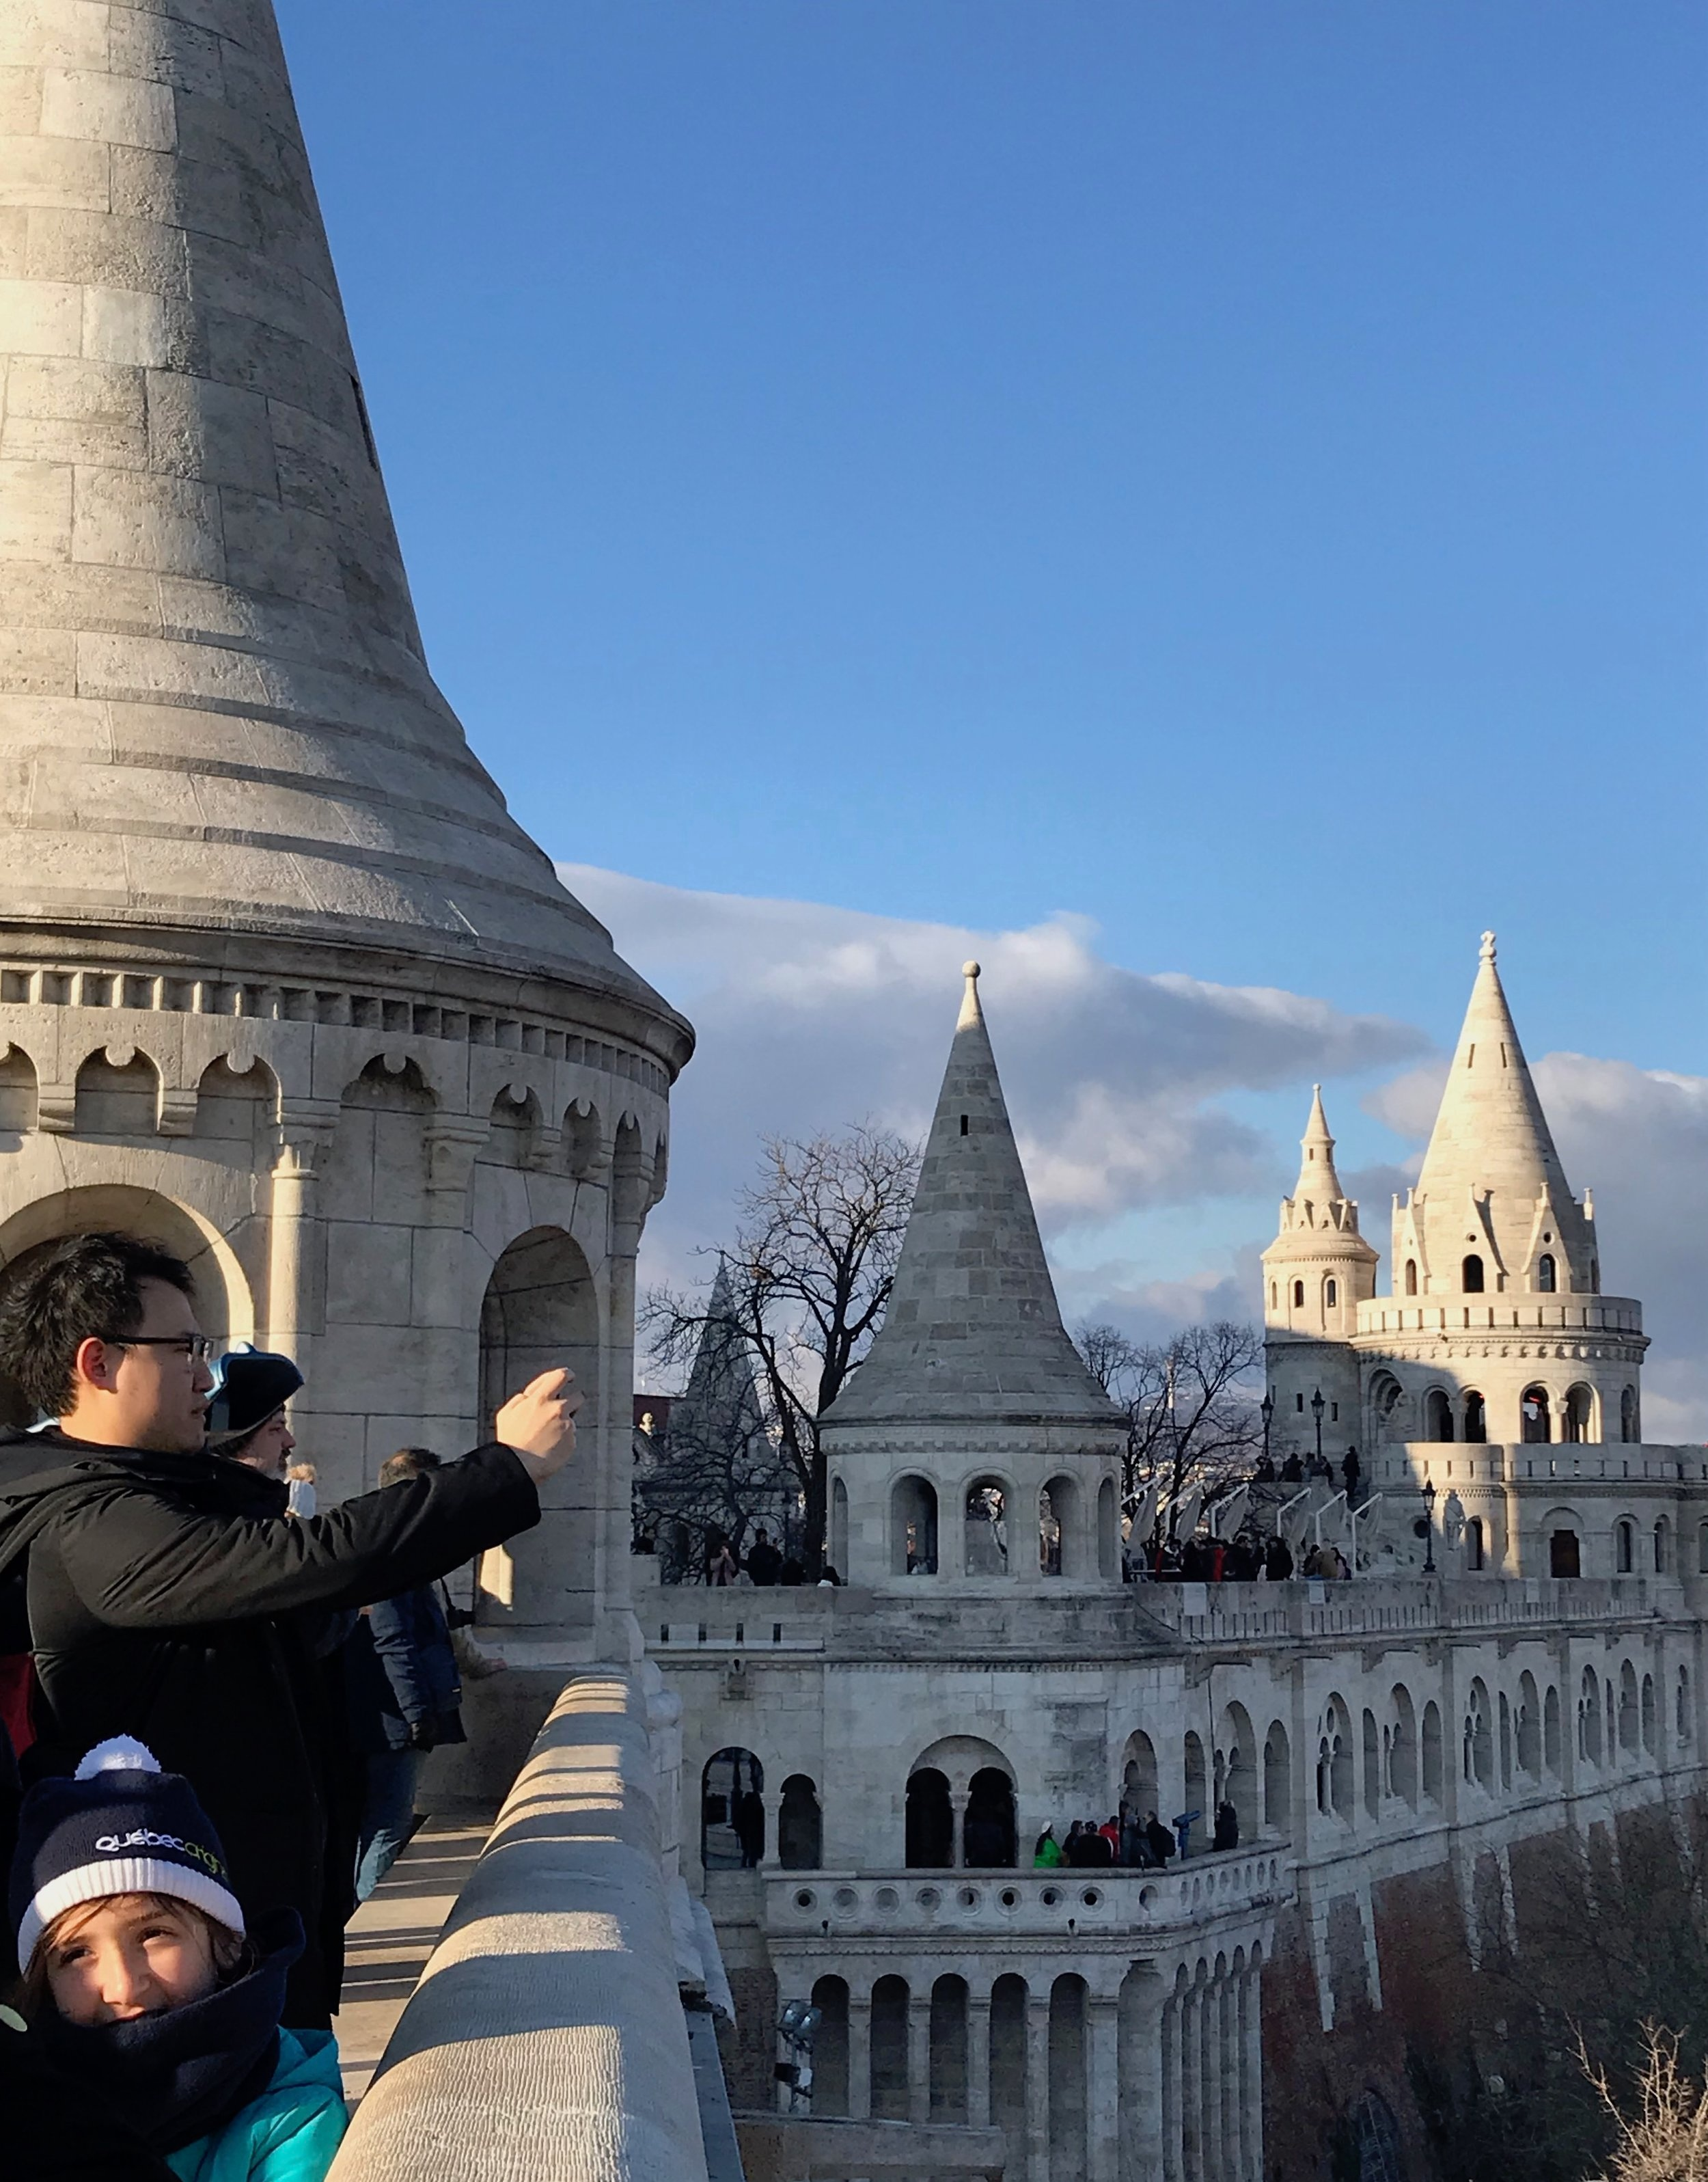 The towers and walkways of Fisherman's Bastion